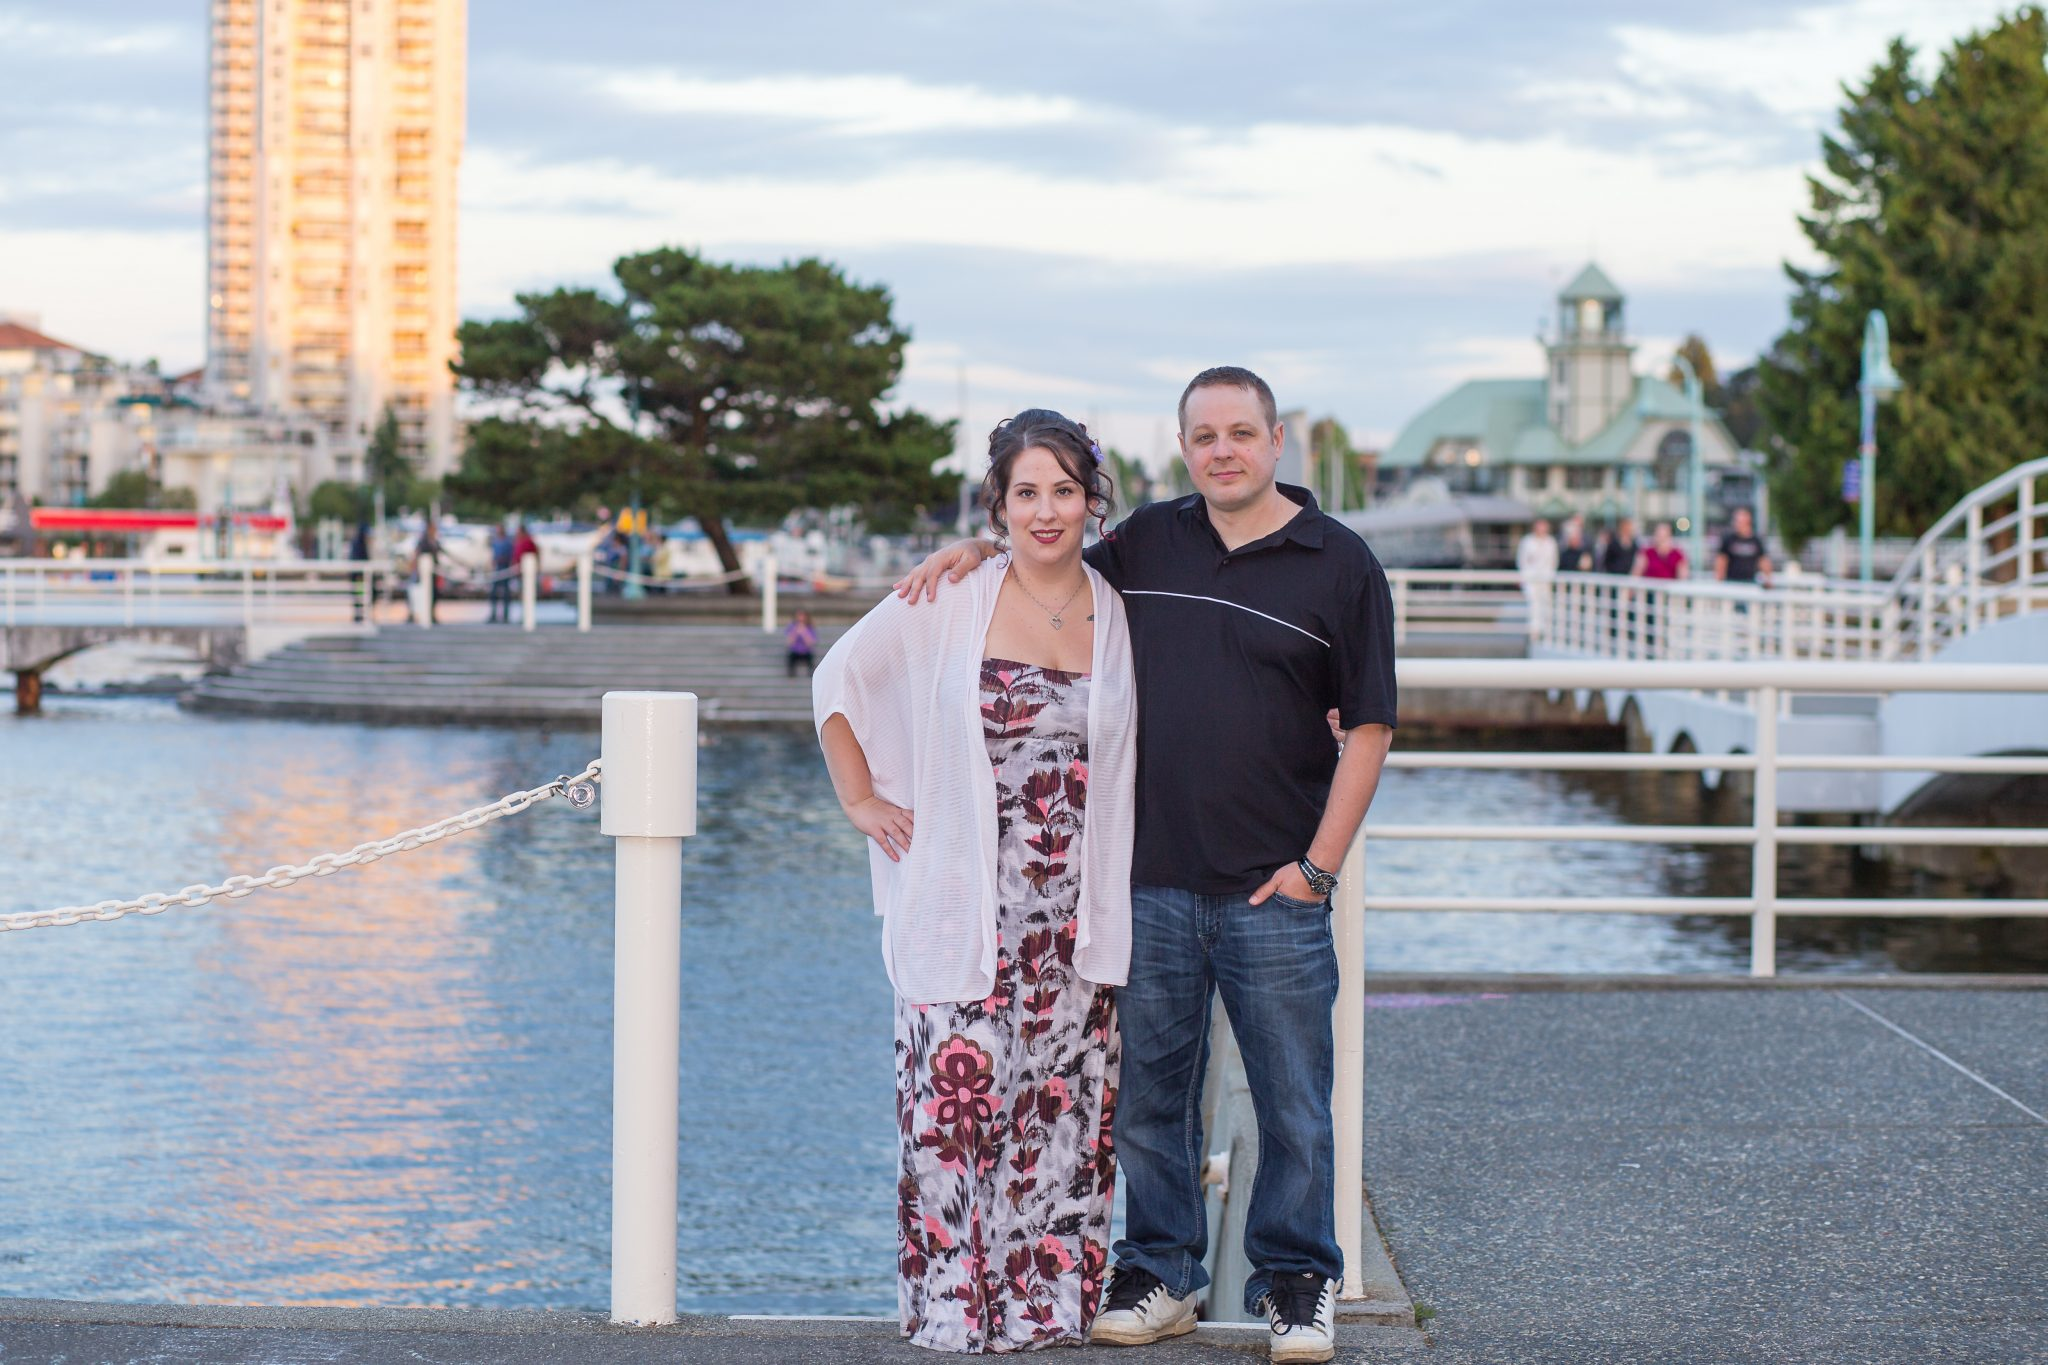 Nanaimo Couples Photography Sesssion